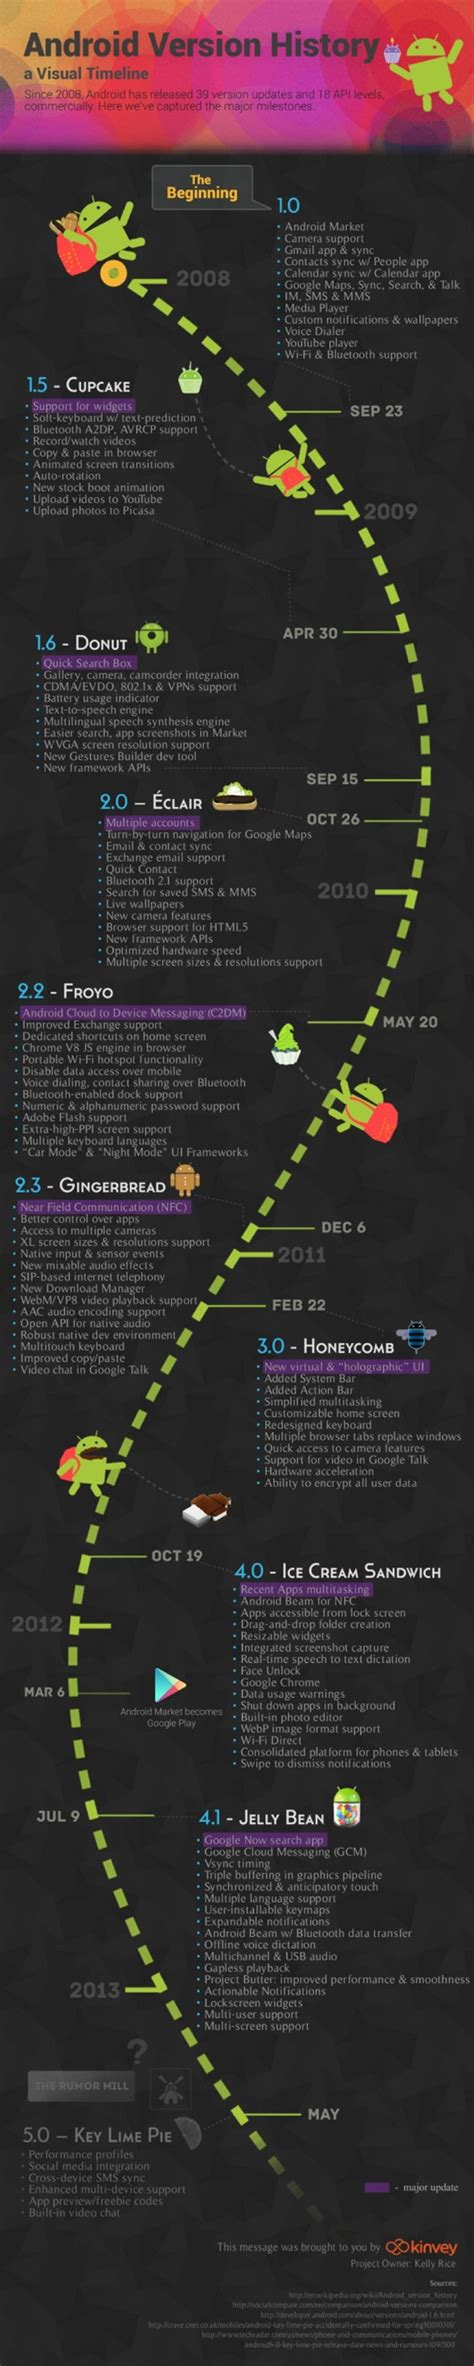 android history android version history guide v1 0 to v4 1 jelly bean infographic redmond pie